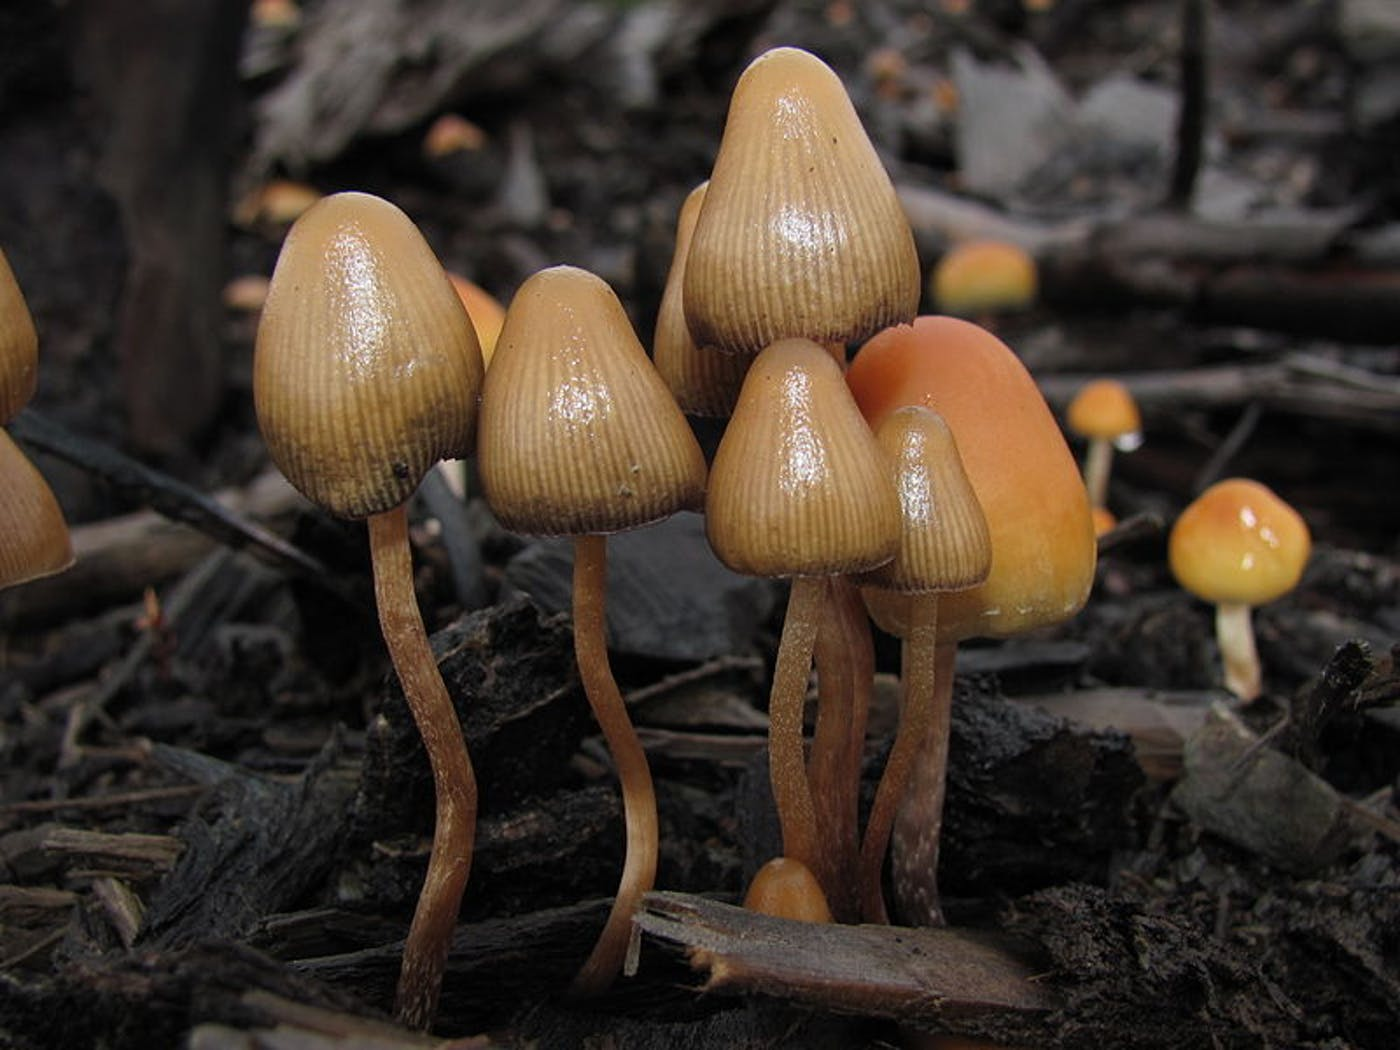 Psychedelic Mushrooms Increase How Connected You Feel With Nature